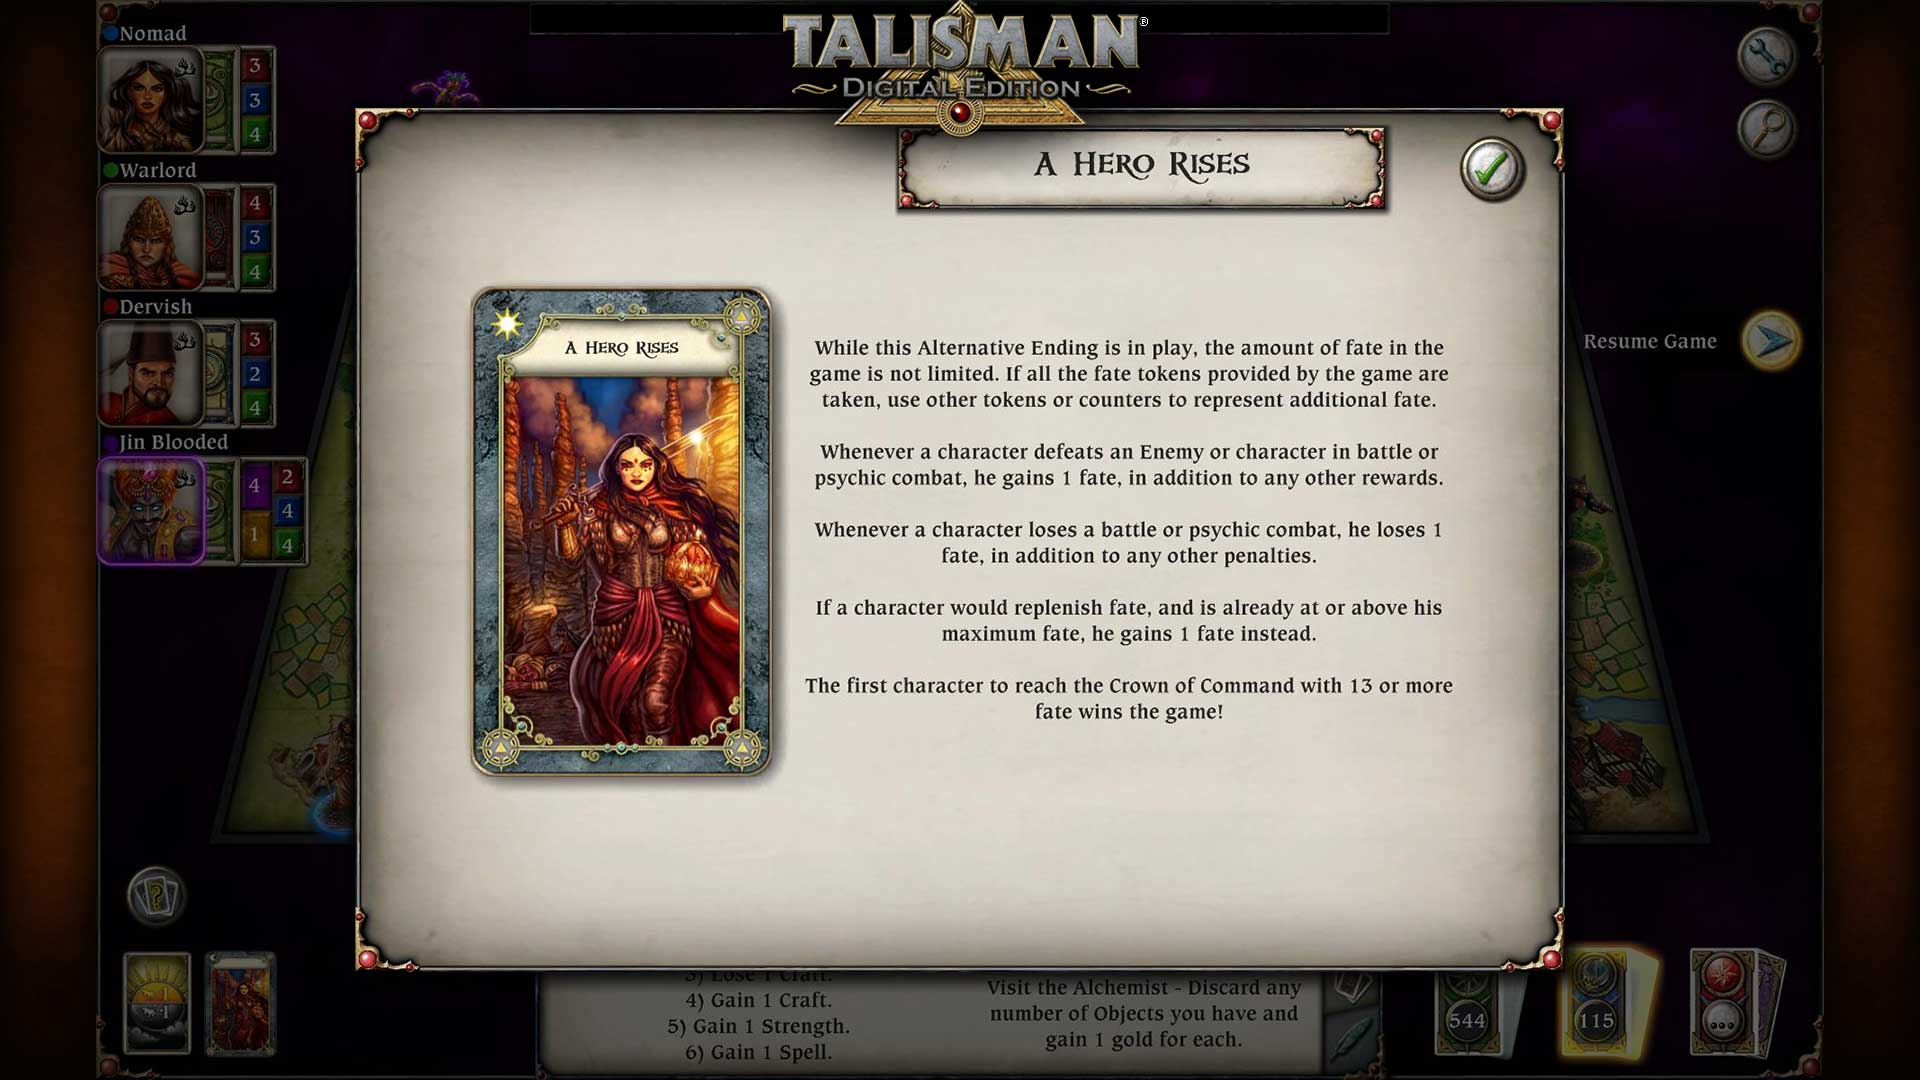 talisman digital edition the f s expansion buy and game summary